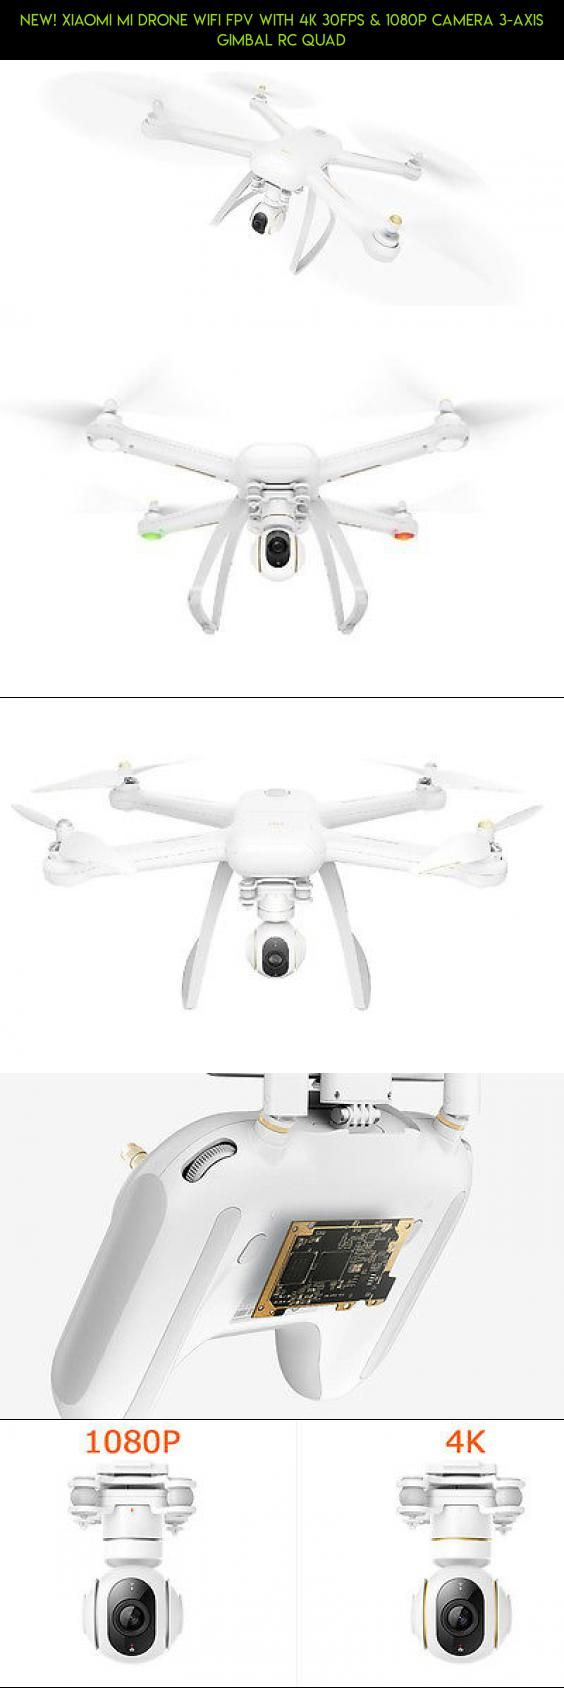 New! Xiaomi Mi Drone WIFI FPV With 4K 30fps & 1080P Camera 3-Axis Gimbal RC Quad #with #fpv #30fps #wifi #drone #kit #products #racing #plans #fpv #parts #camera #1080p #tech #& #drone #mi #4k #shopping #technology #gadgets #xiaomi